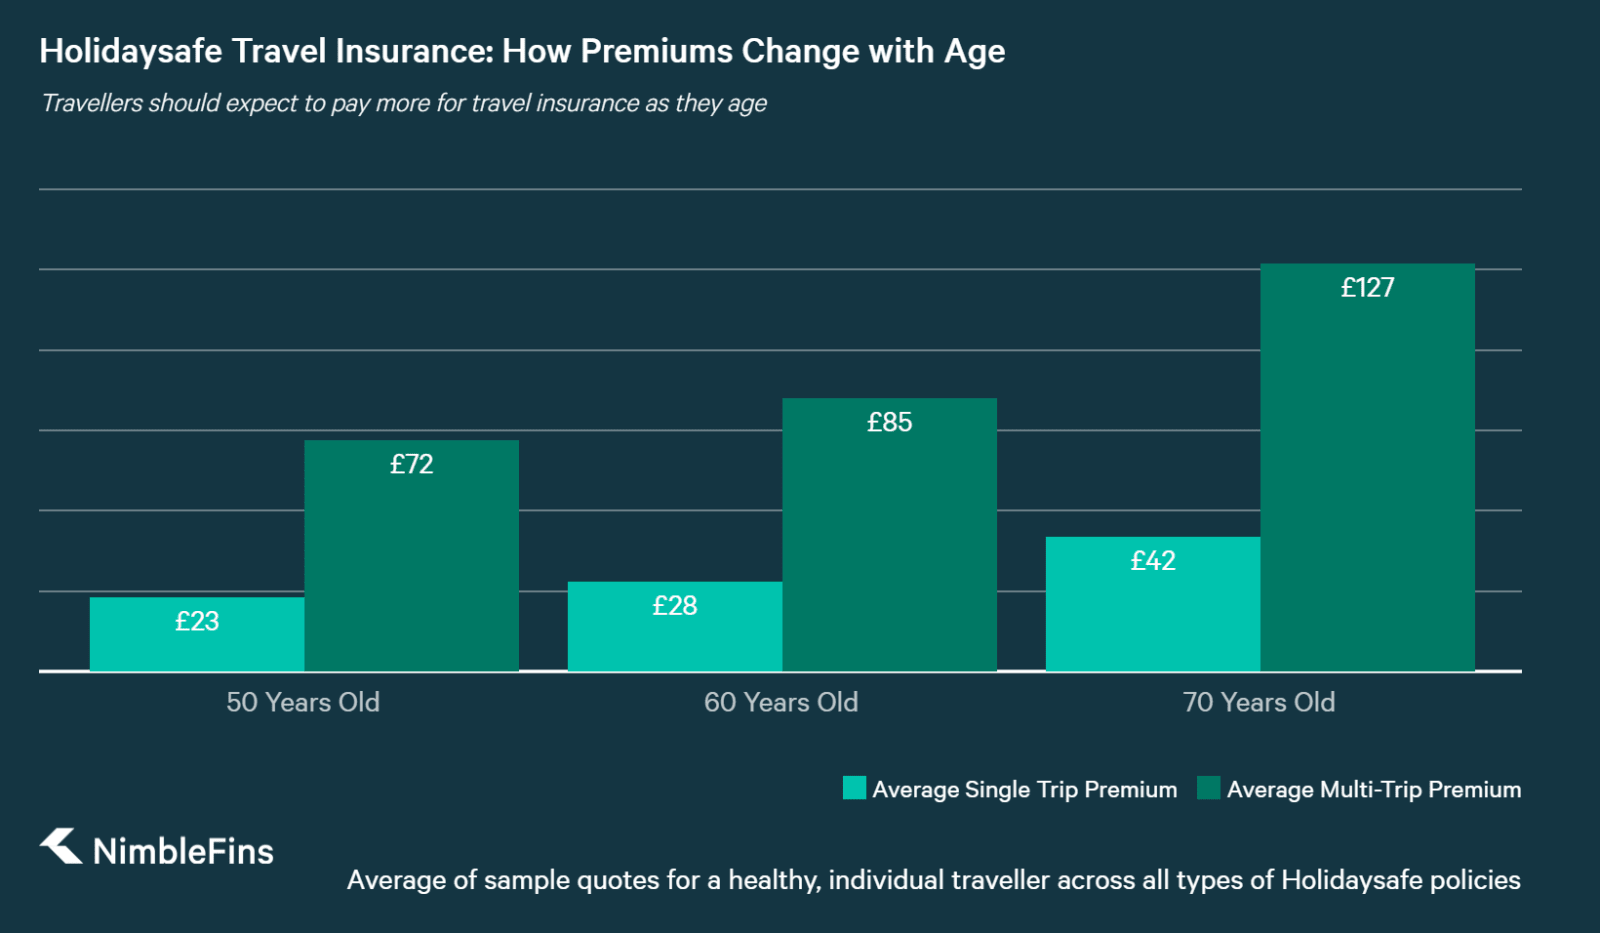 chart showing travel insurance premiums by age for older travellers